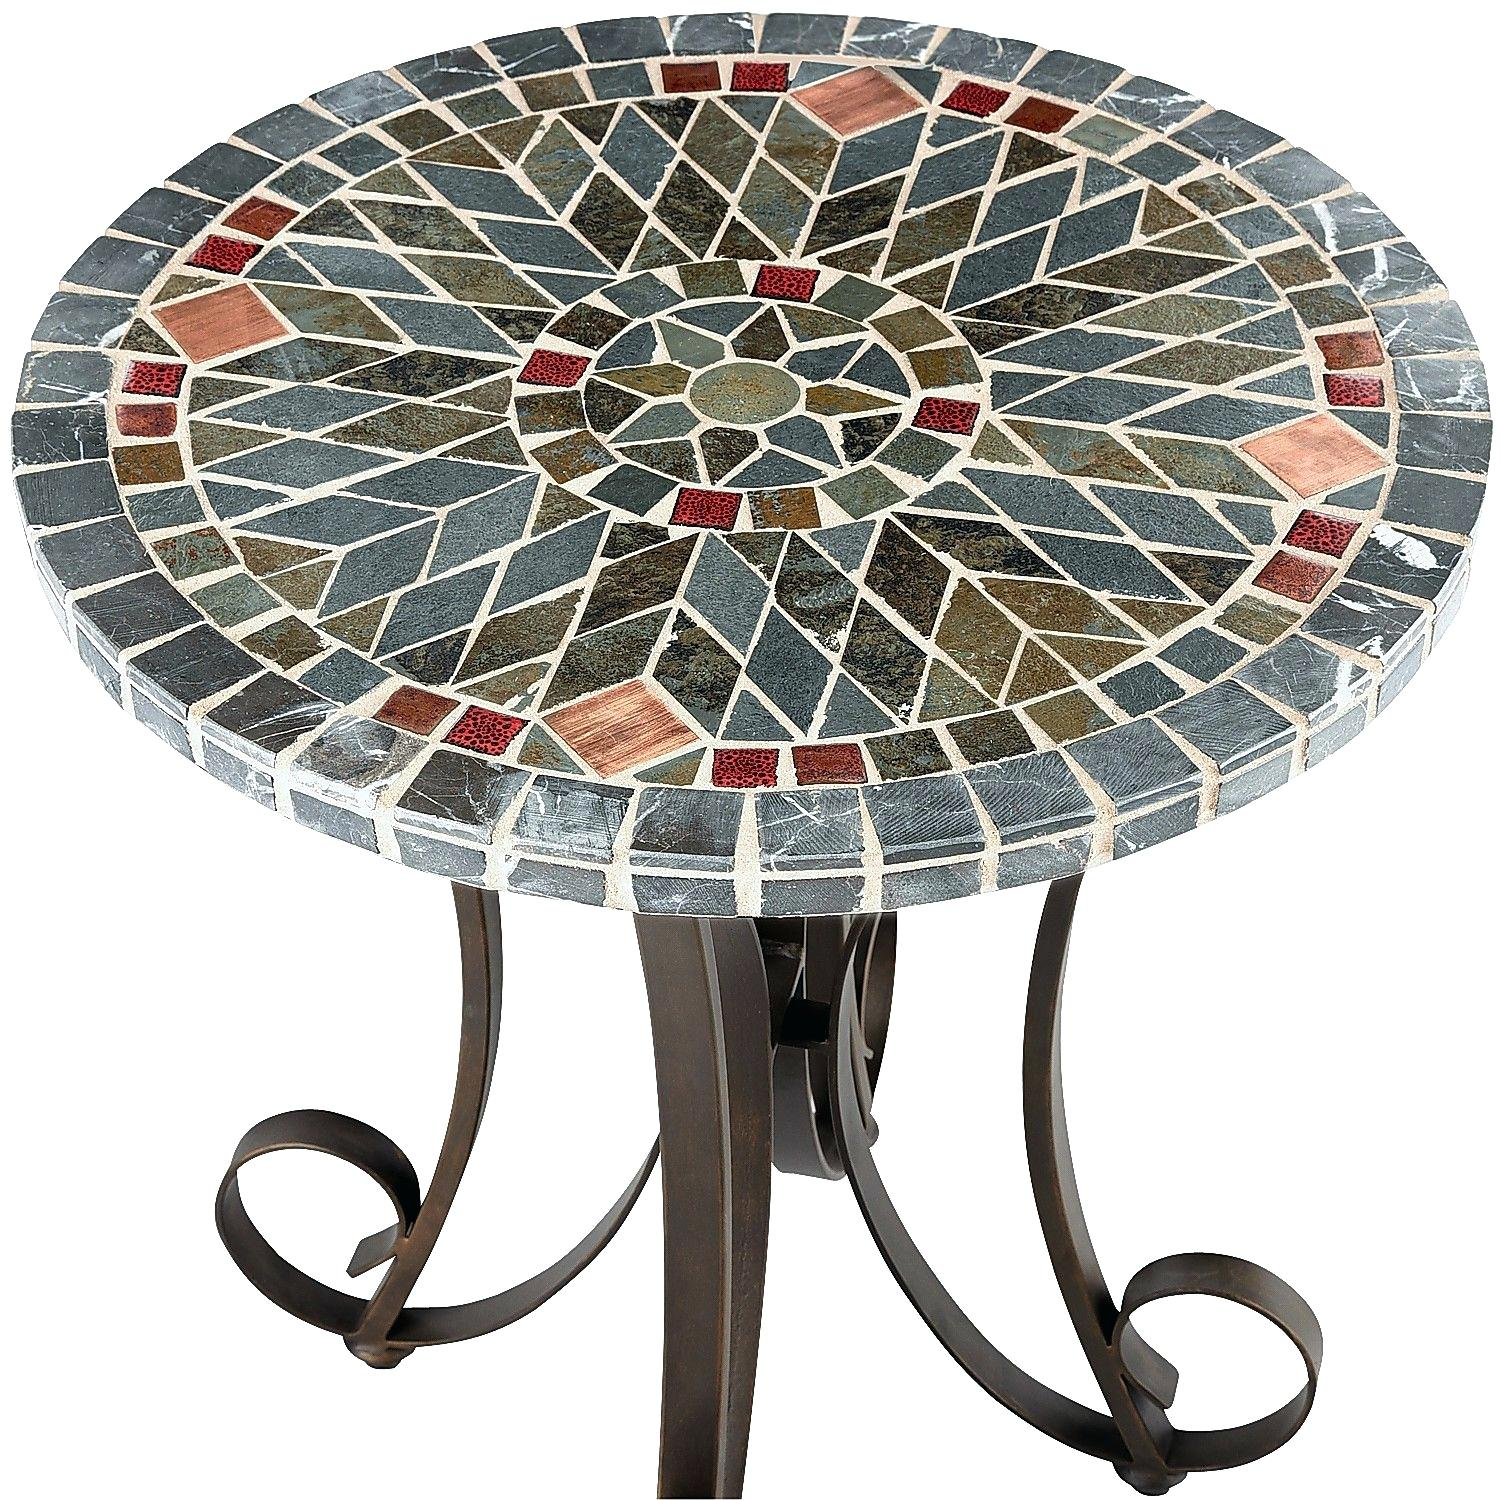 save this item pier accent tables elba mosaic table kenzie indoor blue metal bedside round wood coffee gold coloured lamps white glass cabinet square patio umbrella corner end